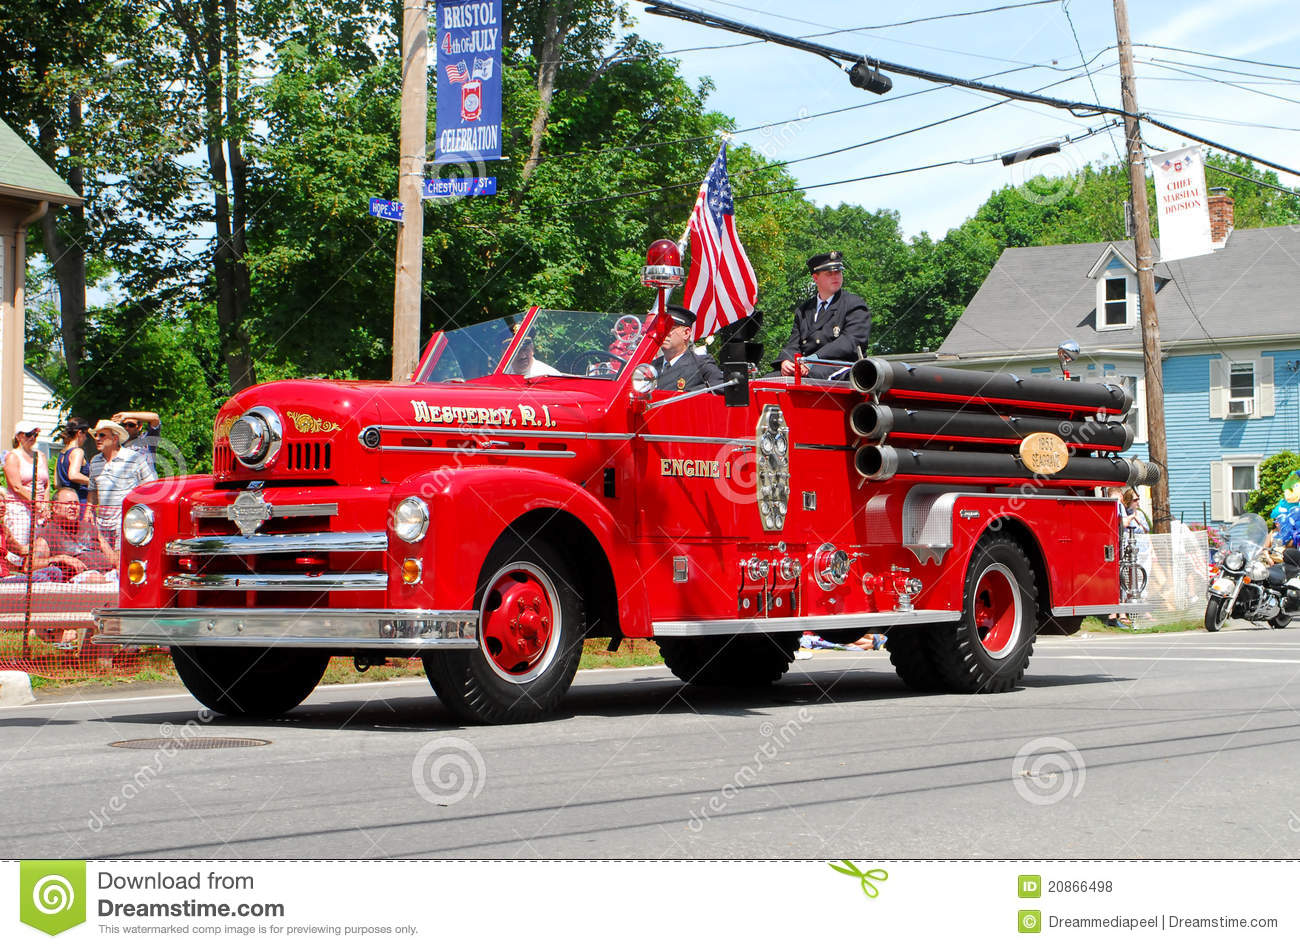 Vintage Westerly, RI Firetruck